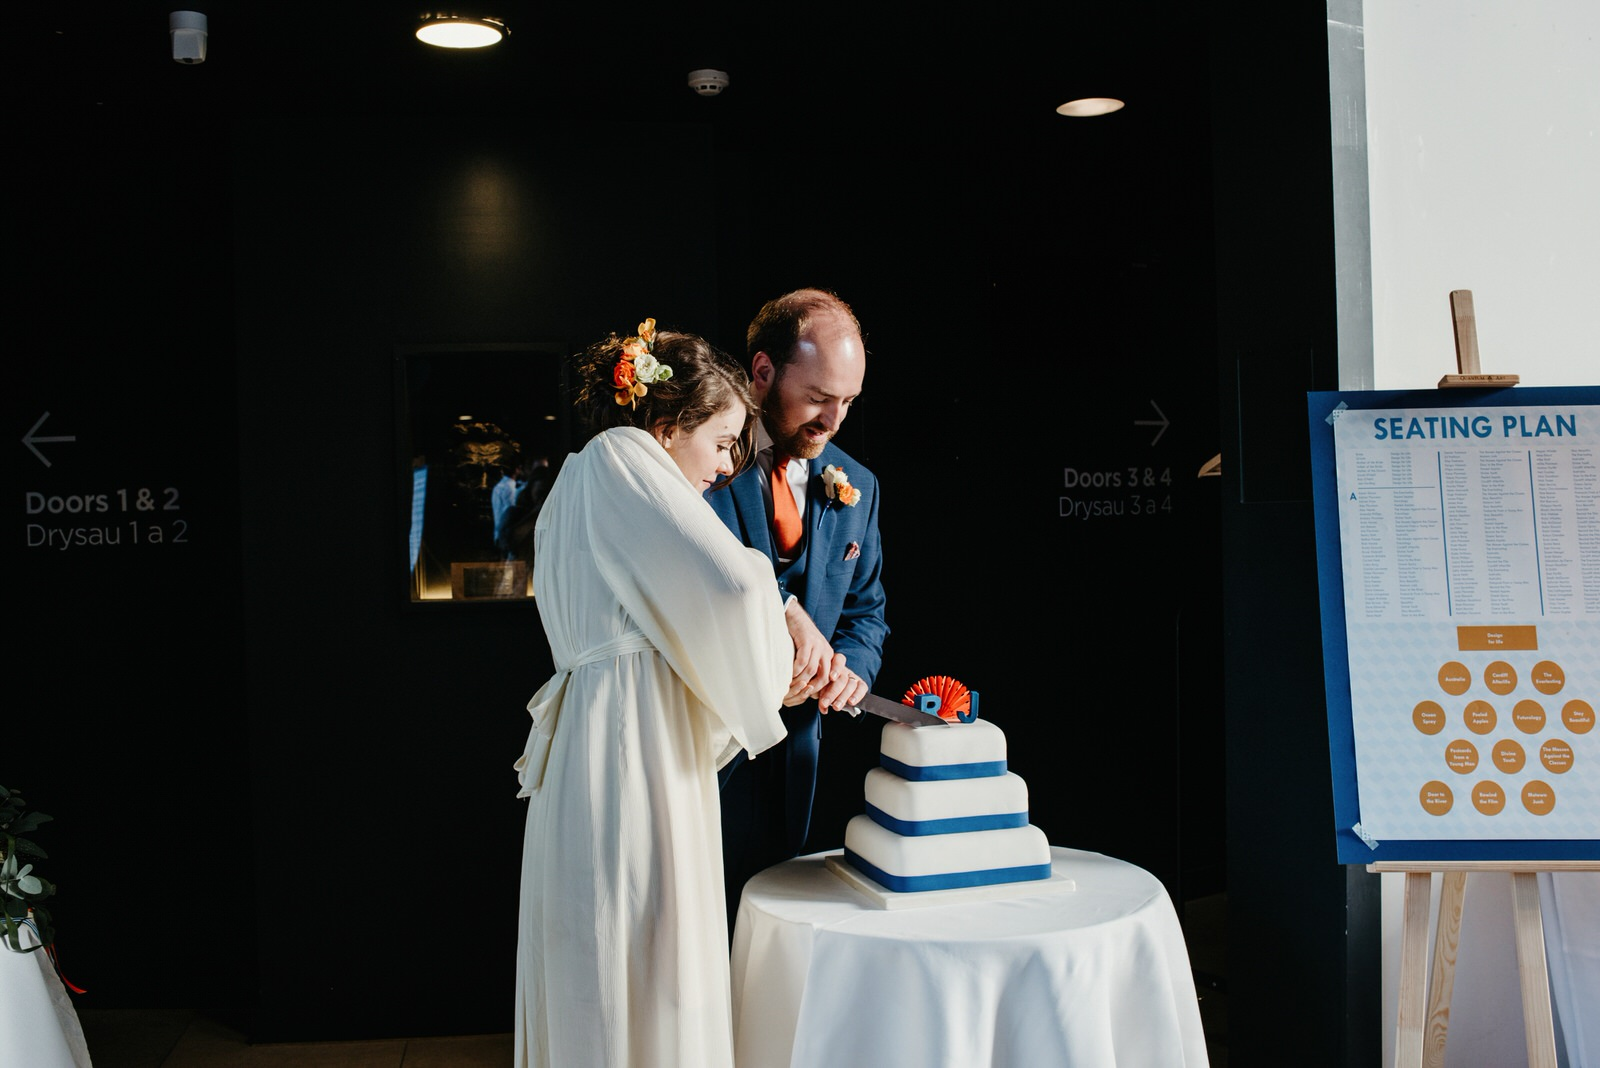 Bride and groom cutting simple cake with blue ribbon